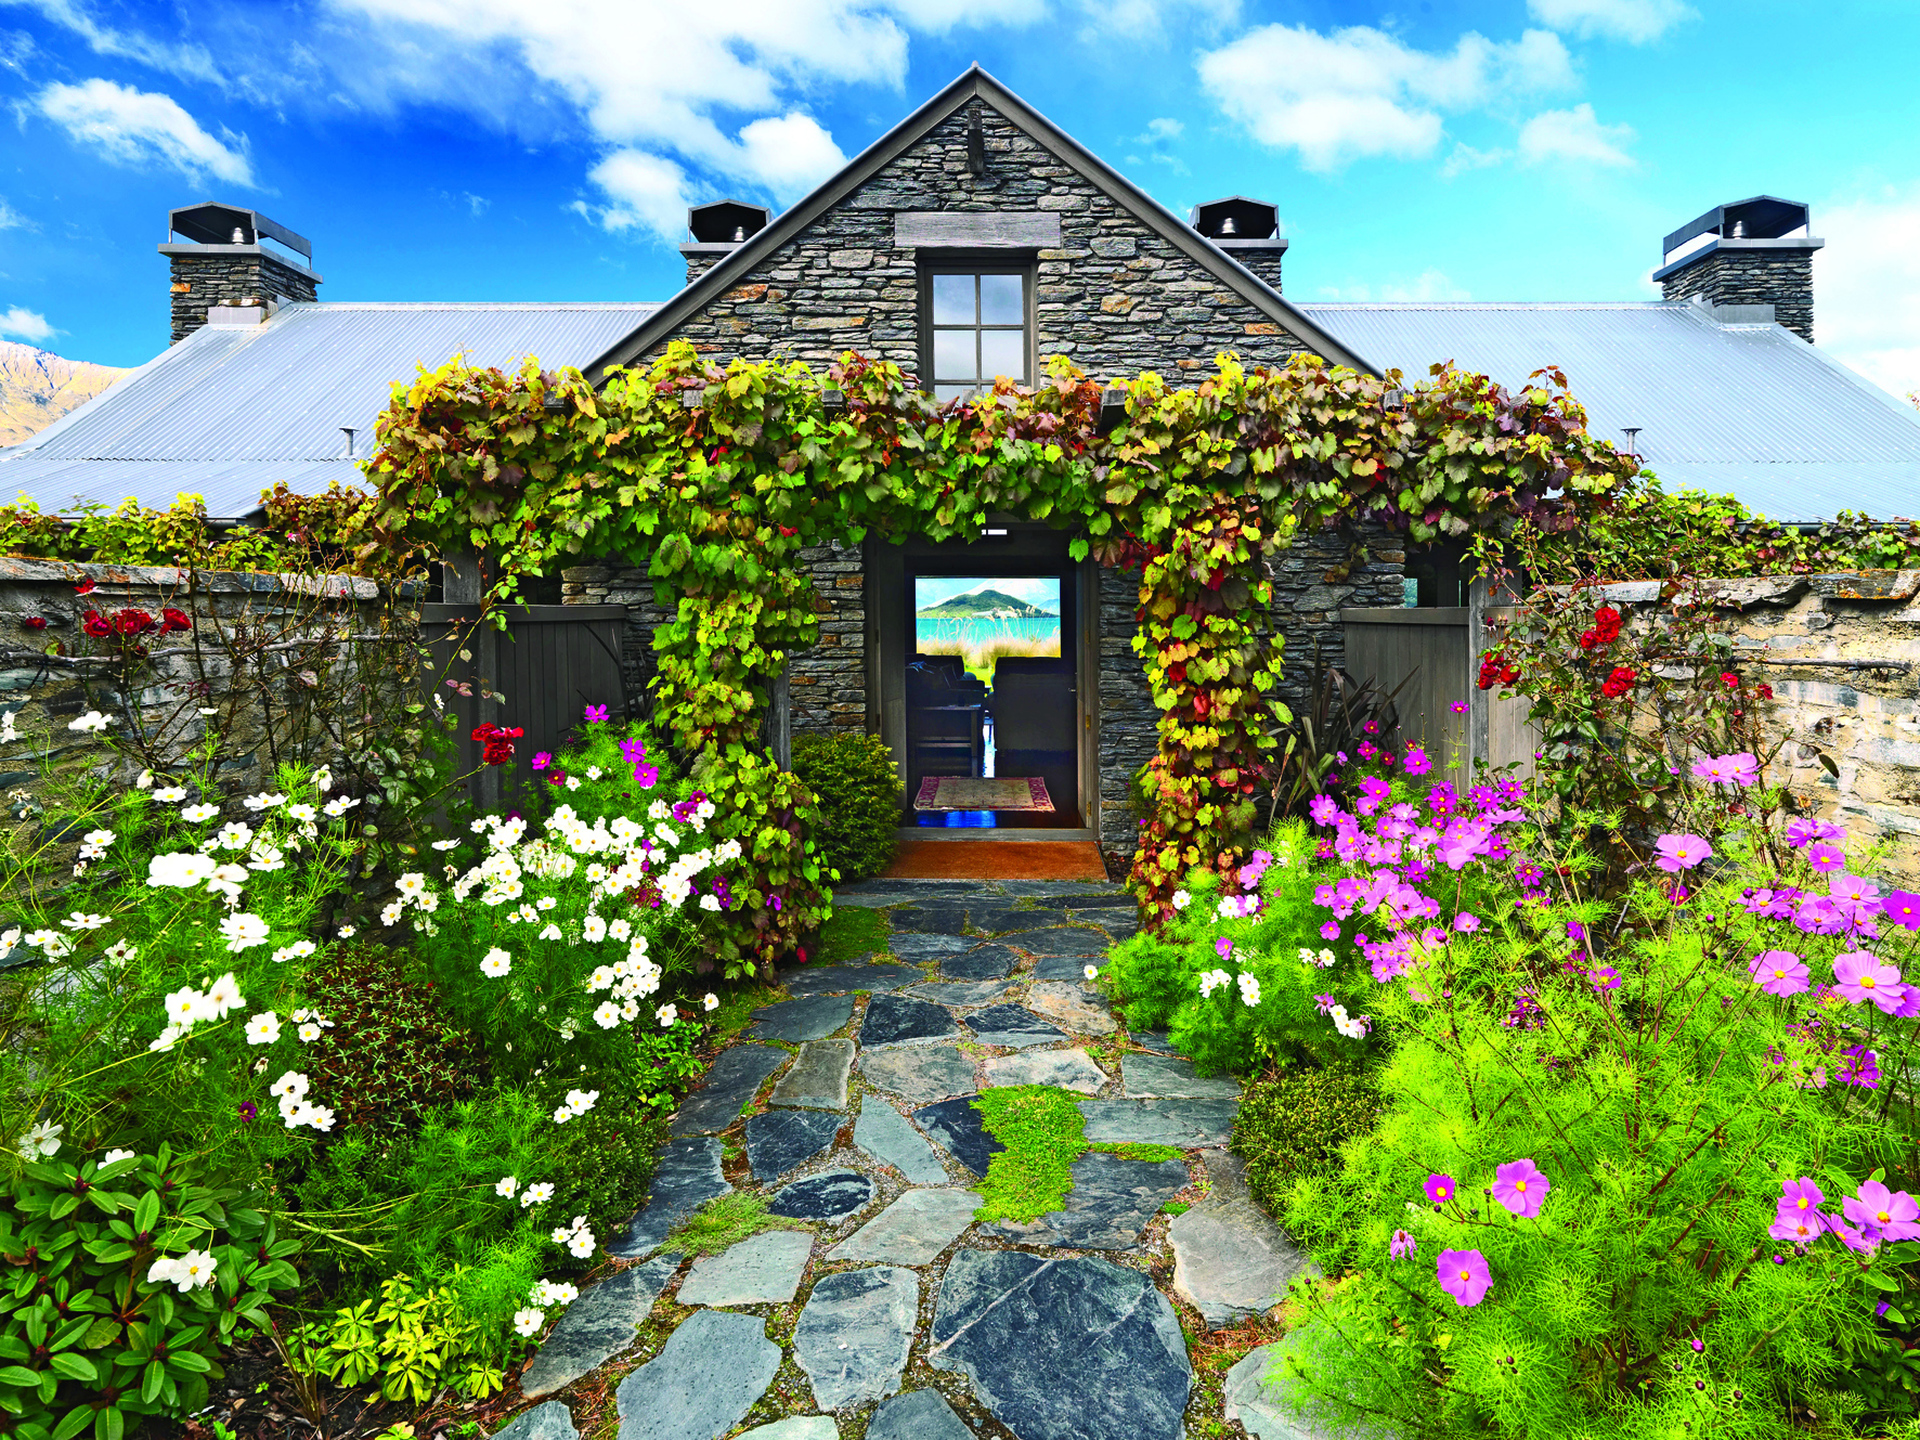 Blanket_Bay_ Chalet entry CMYK.jpg